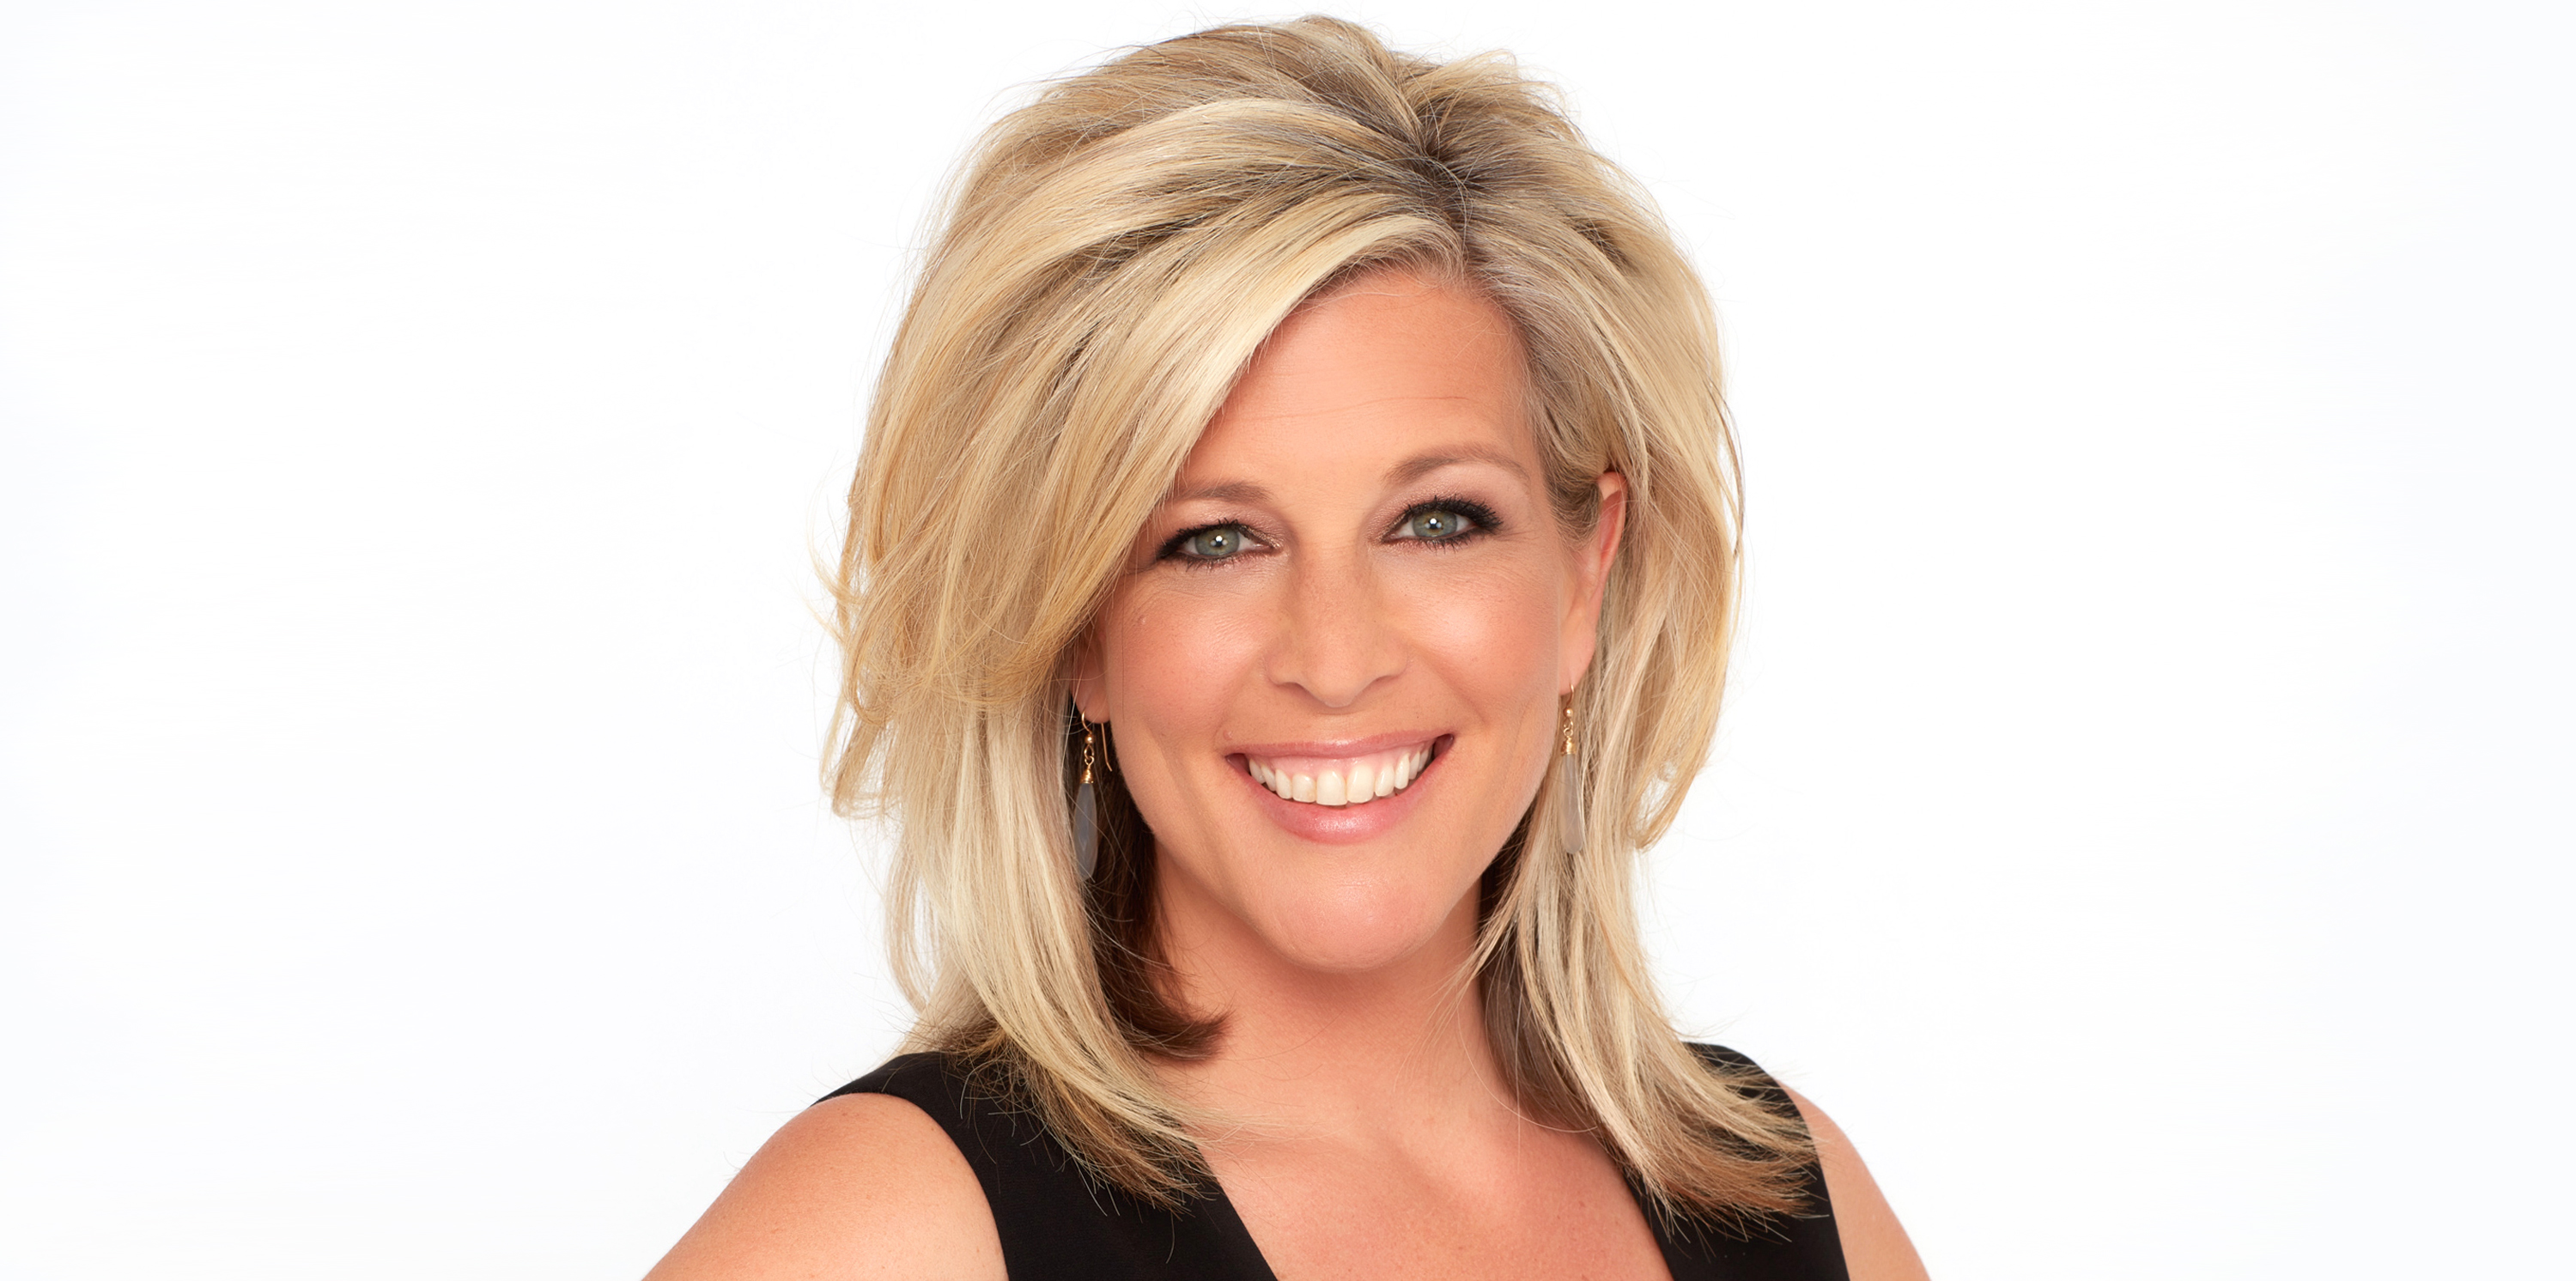 Laura Wright biography